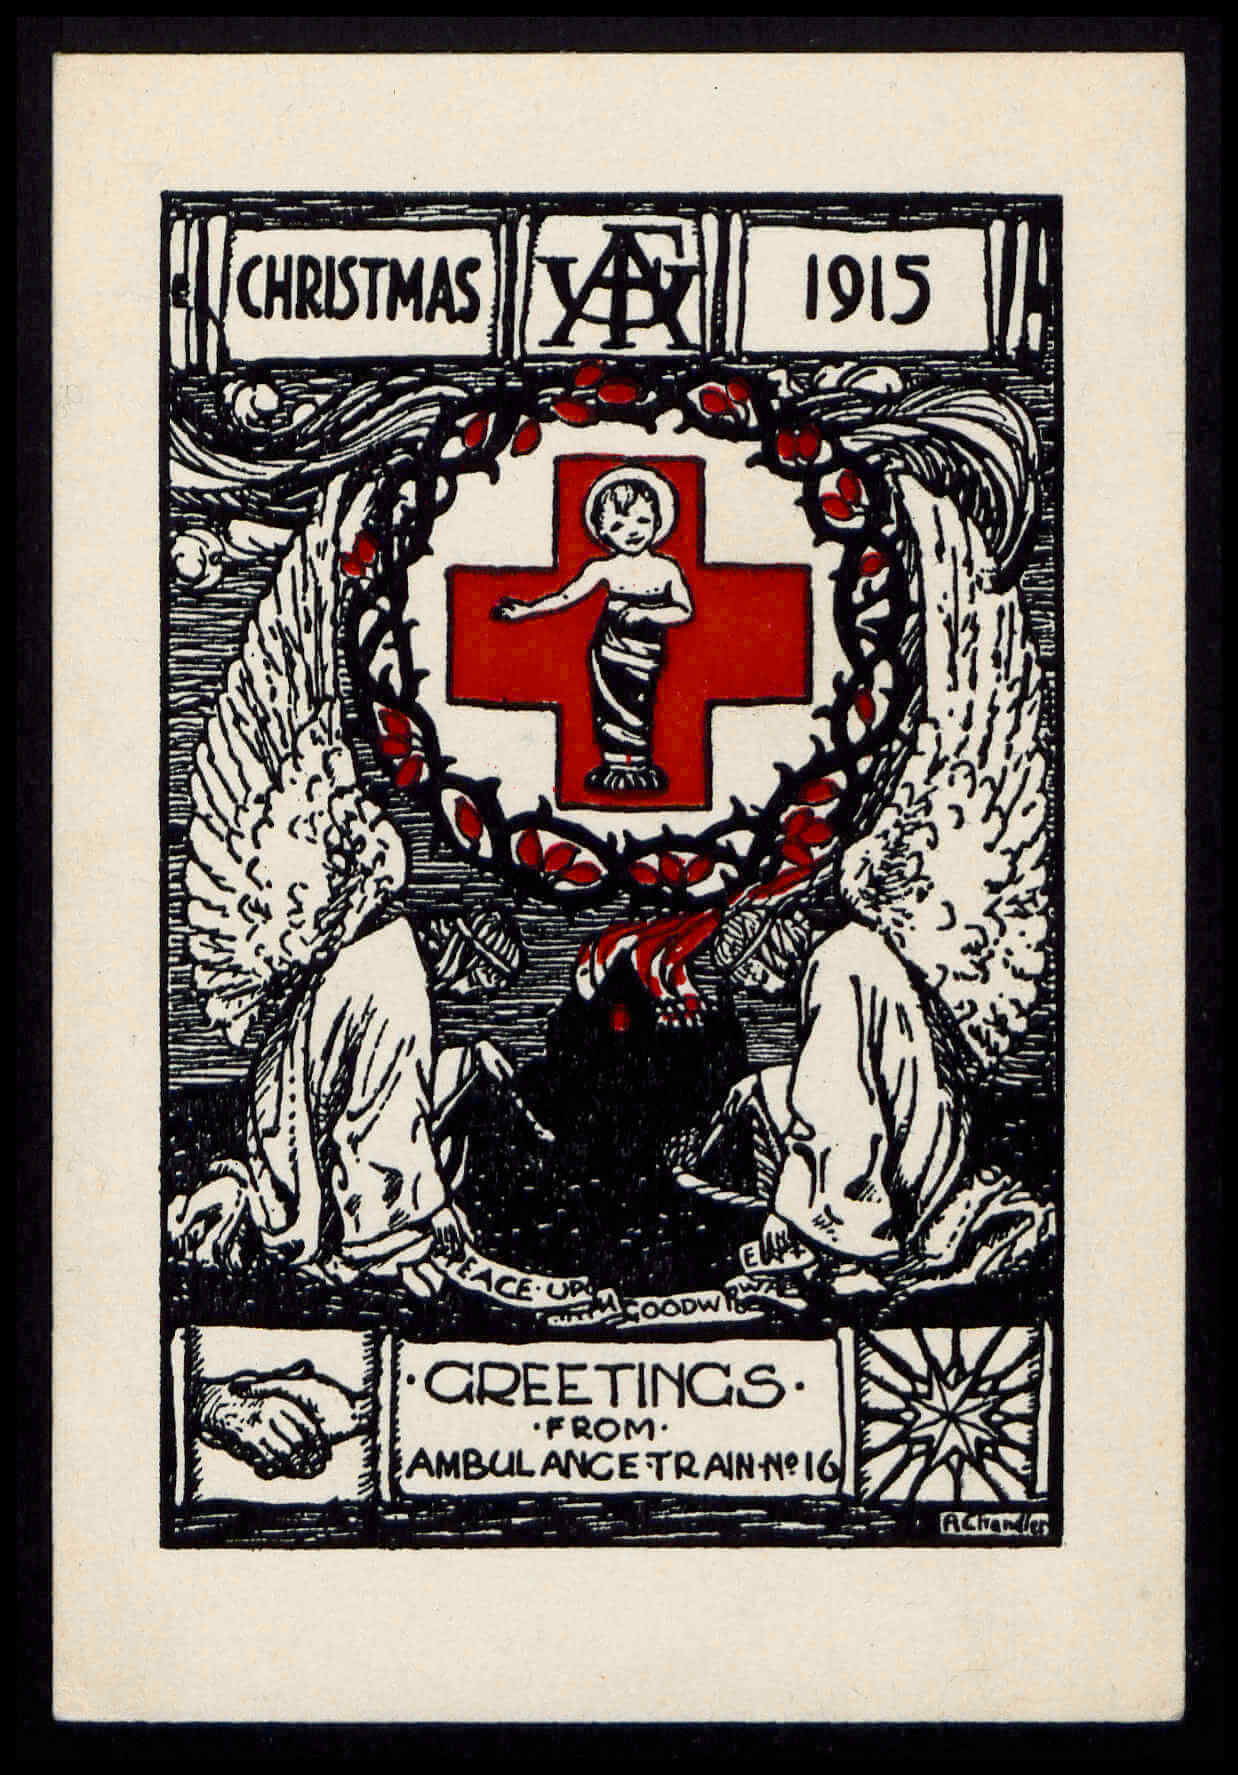 Christmas 1915 / Greetings from Ambulance Train No. 16, 1915 © 	Special Collections, University of Leeds. Further reproduction prohibited without permission.